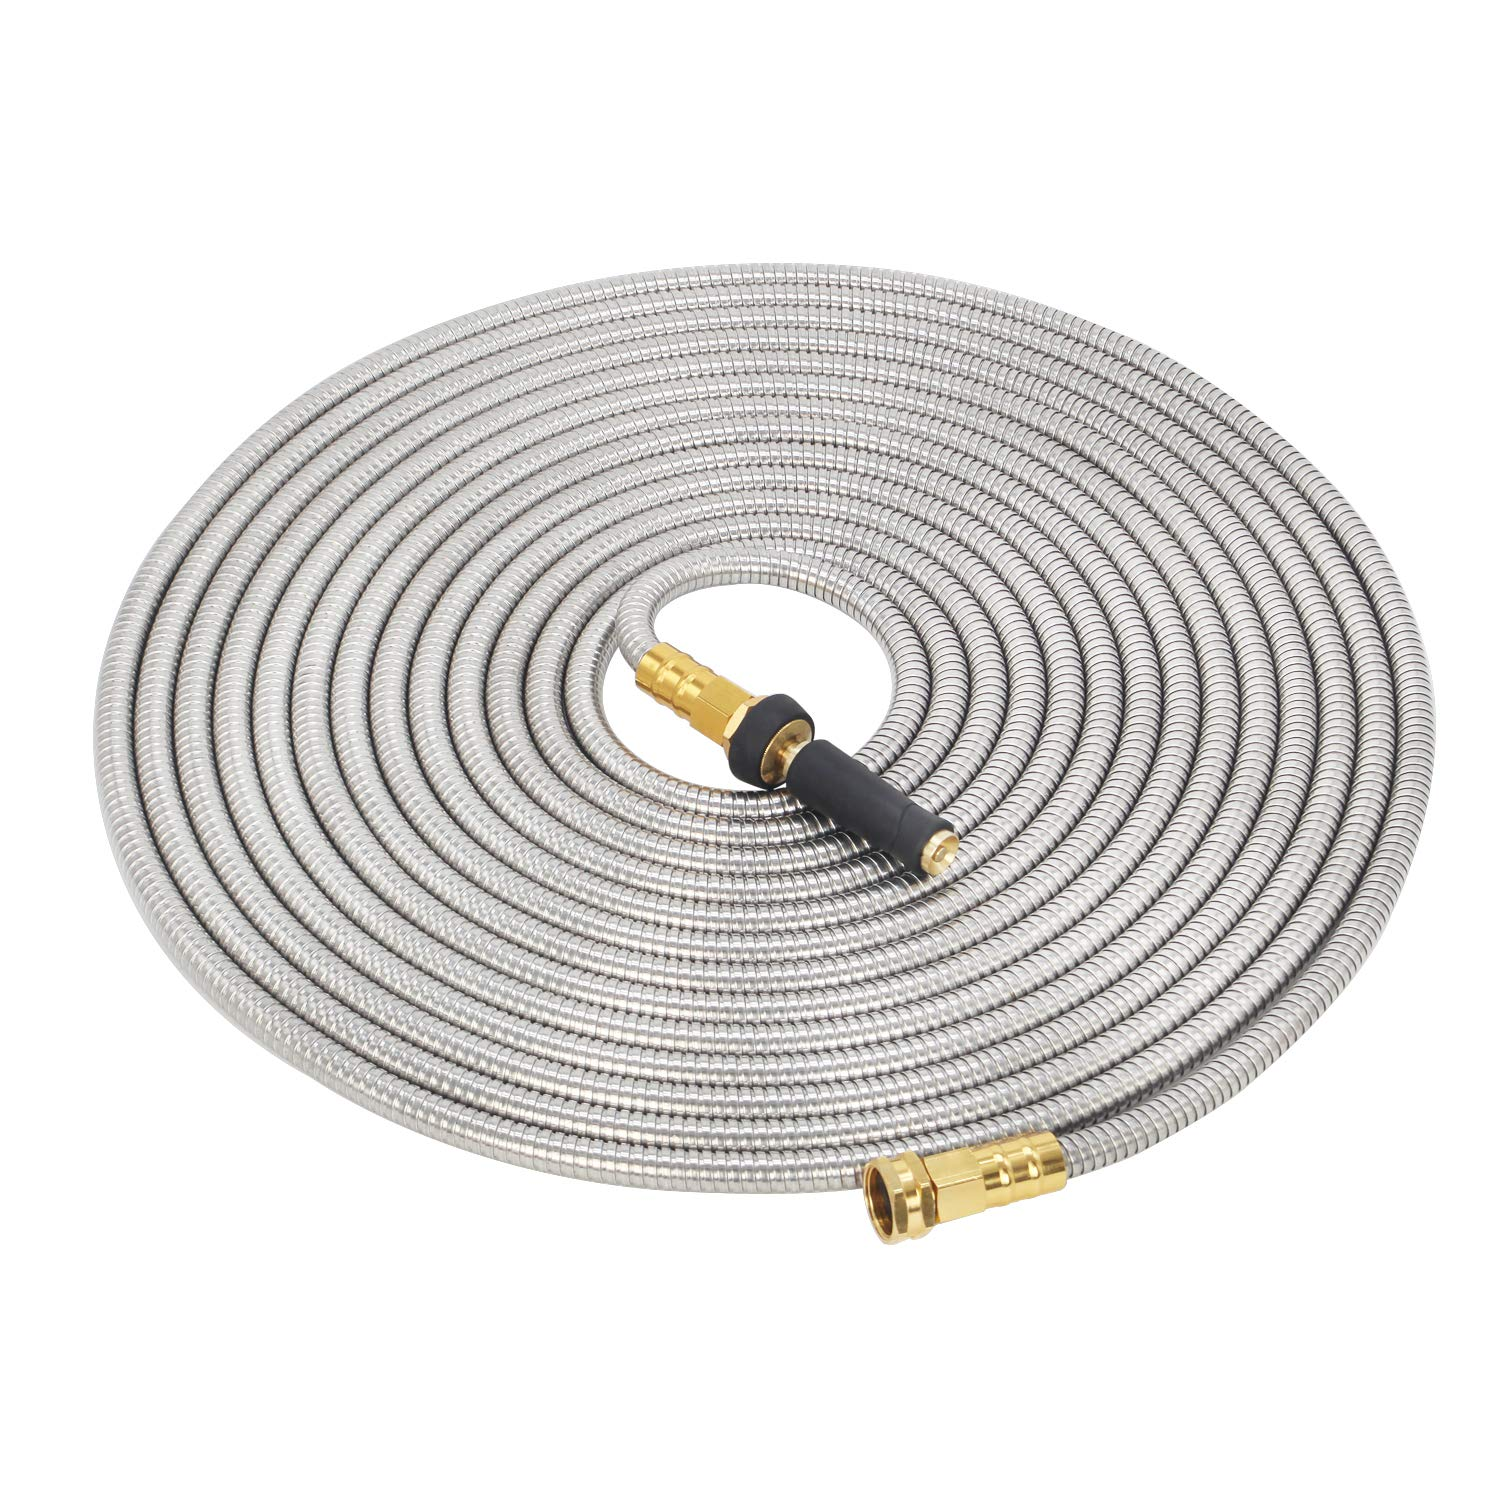 GRUNEN WOLKEN 50 FT 304 Stainless Steel Metal Garden Hose with Solid Brass Nozzle - Solid Metal Fittings and Newest Spray Nozzle, Lightweight, Kink Free, Durable and Easy to Store(50 FT)